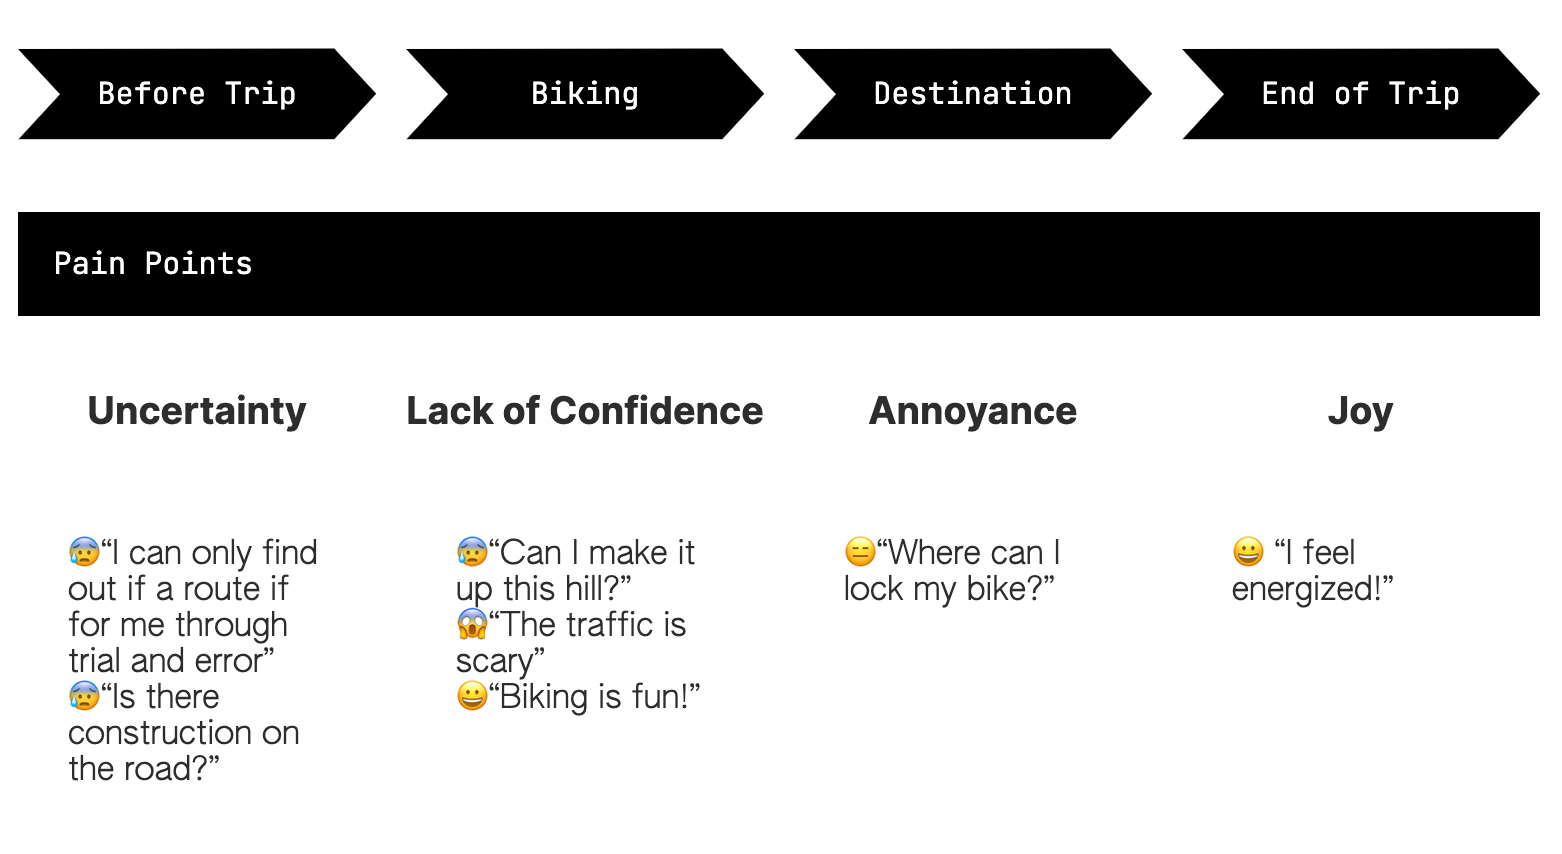 "Journey map detailing before trip, biking, destination, and end of trip. It shows the feeling along the trip: ""uncertainty"" ""lack of confidence"" ""annoyance"" and ""joy"". In uncertainty, it shows the quote ""I can only find out if a rout is for me through trial and error"" and ""is there construction on the road"". In ""lack of confidence"" it says "" Can I make it up this hill?"" and ""the traffic is scary"" and ""biking is fun"". In Annoyance it says "" where can I park my bike?"" in ""joy"" it says ""I feel energized""."